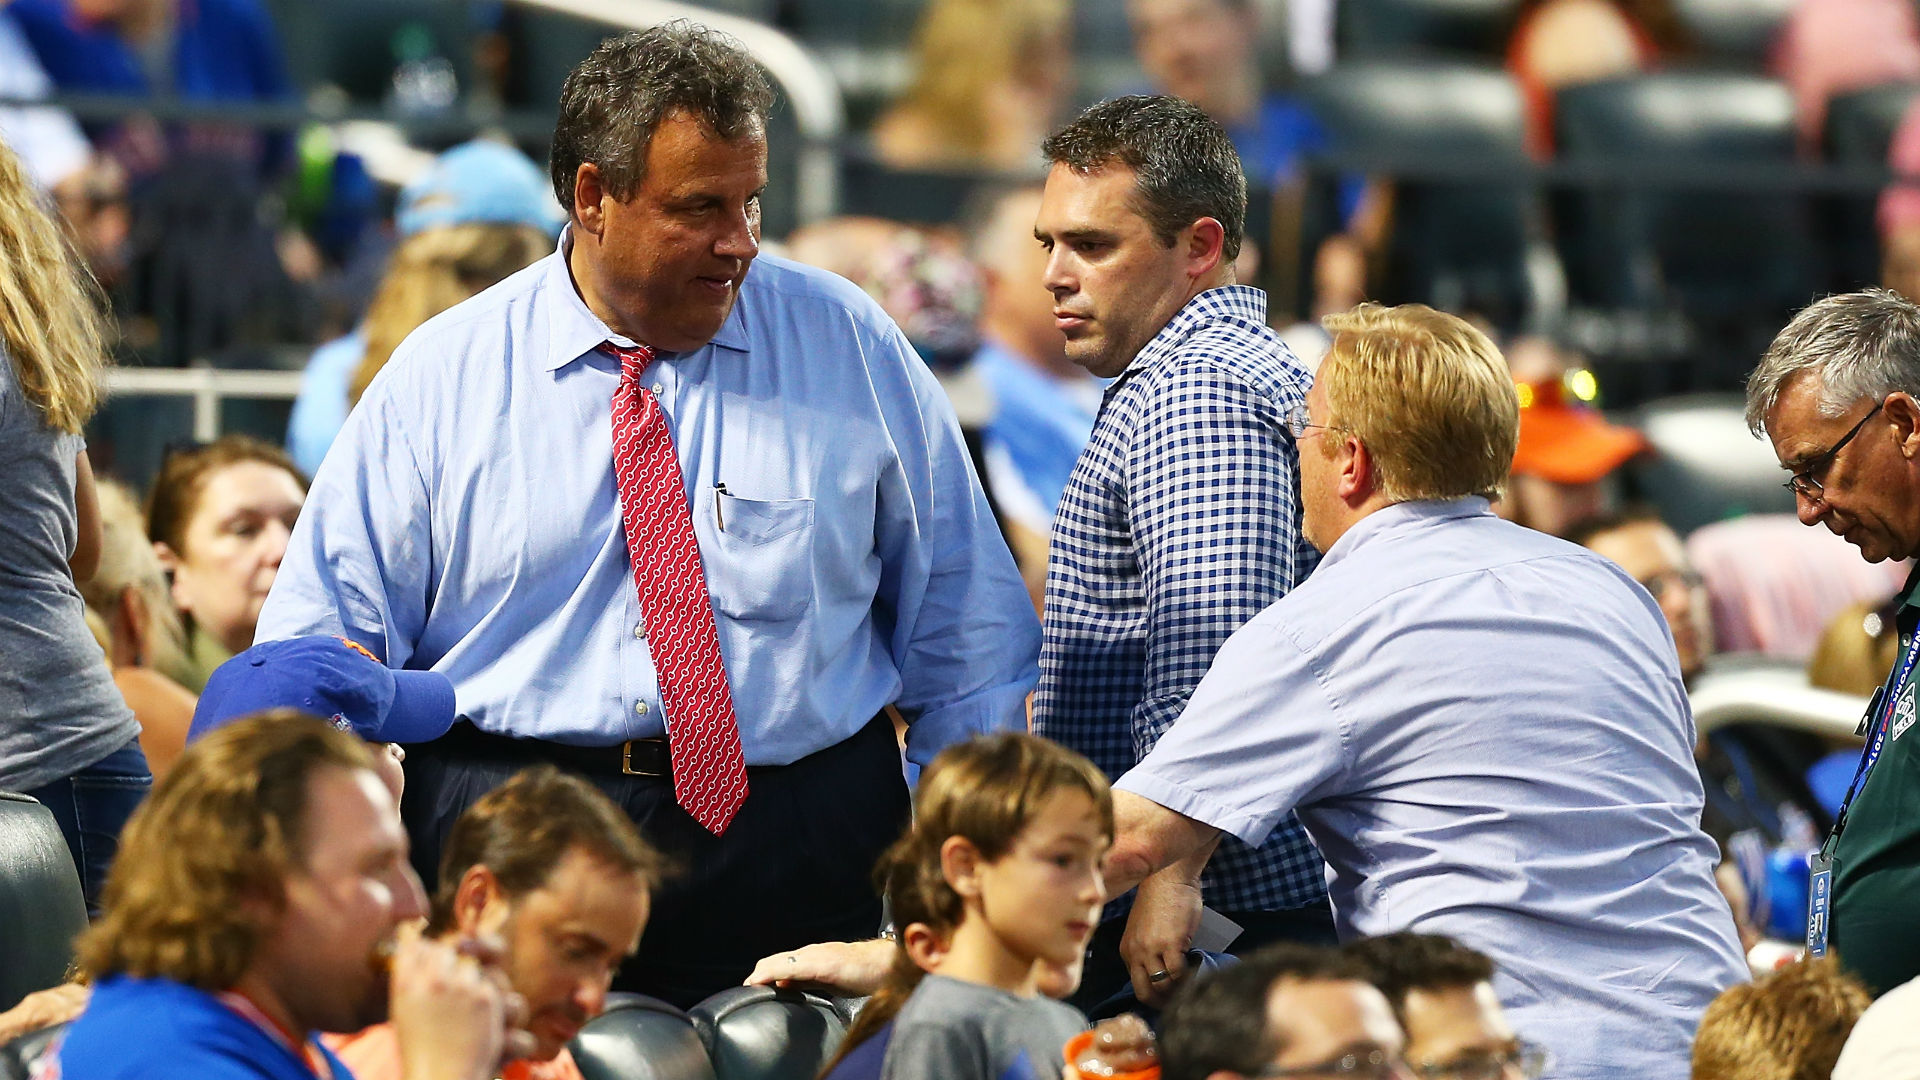 Chris Christie gets in a Cubs fan's face: 'You're a big shot&#39